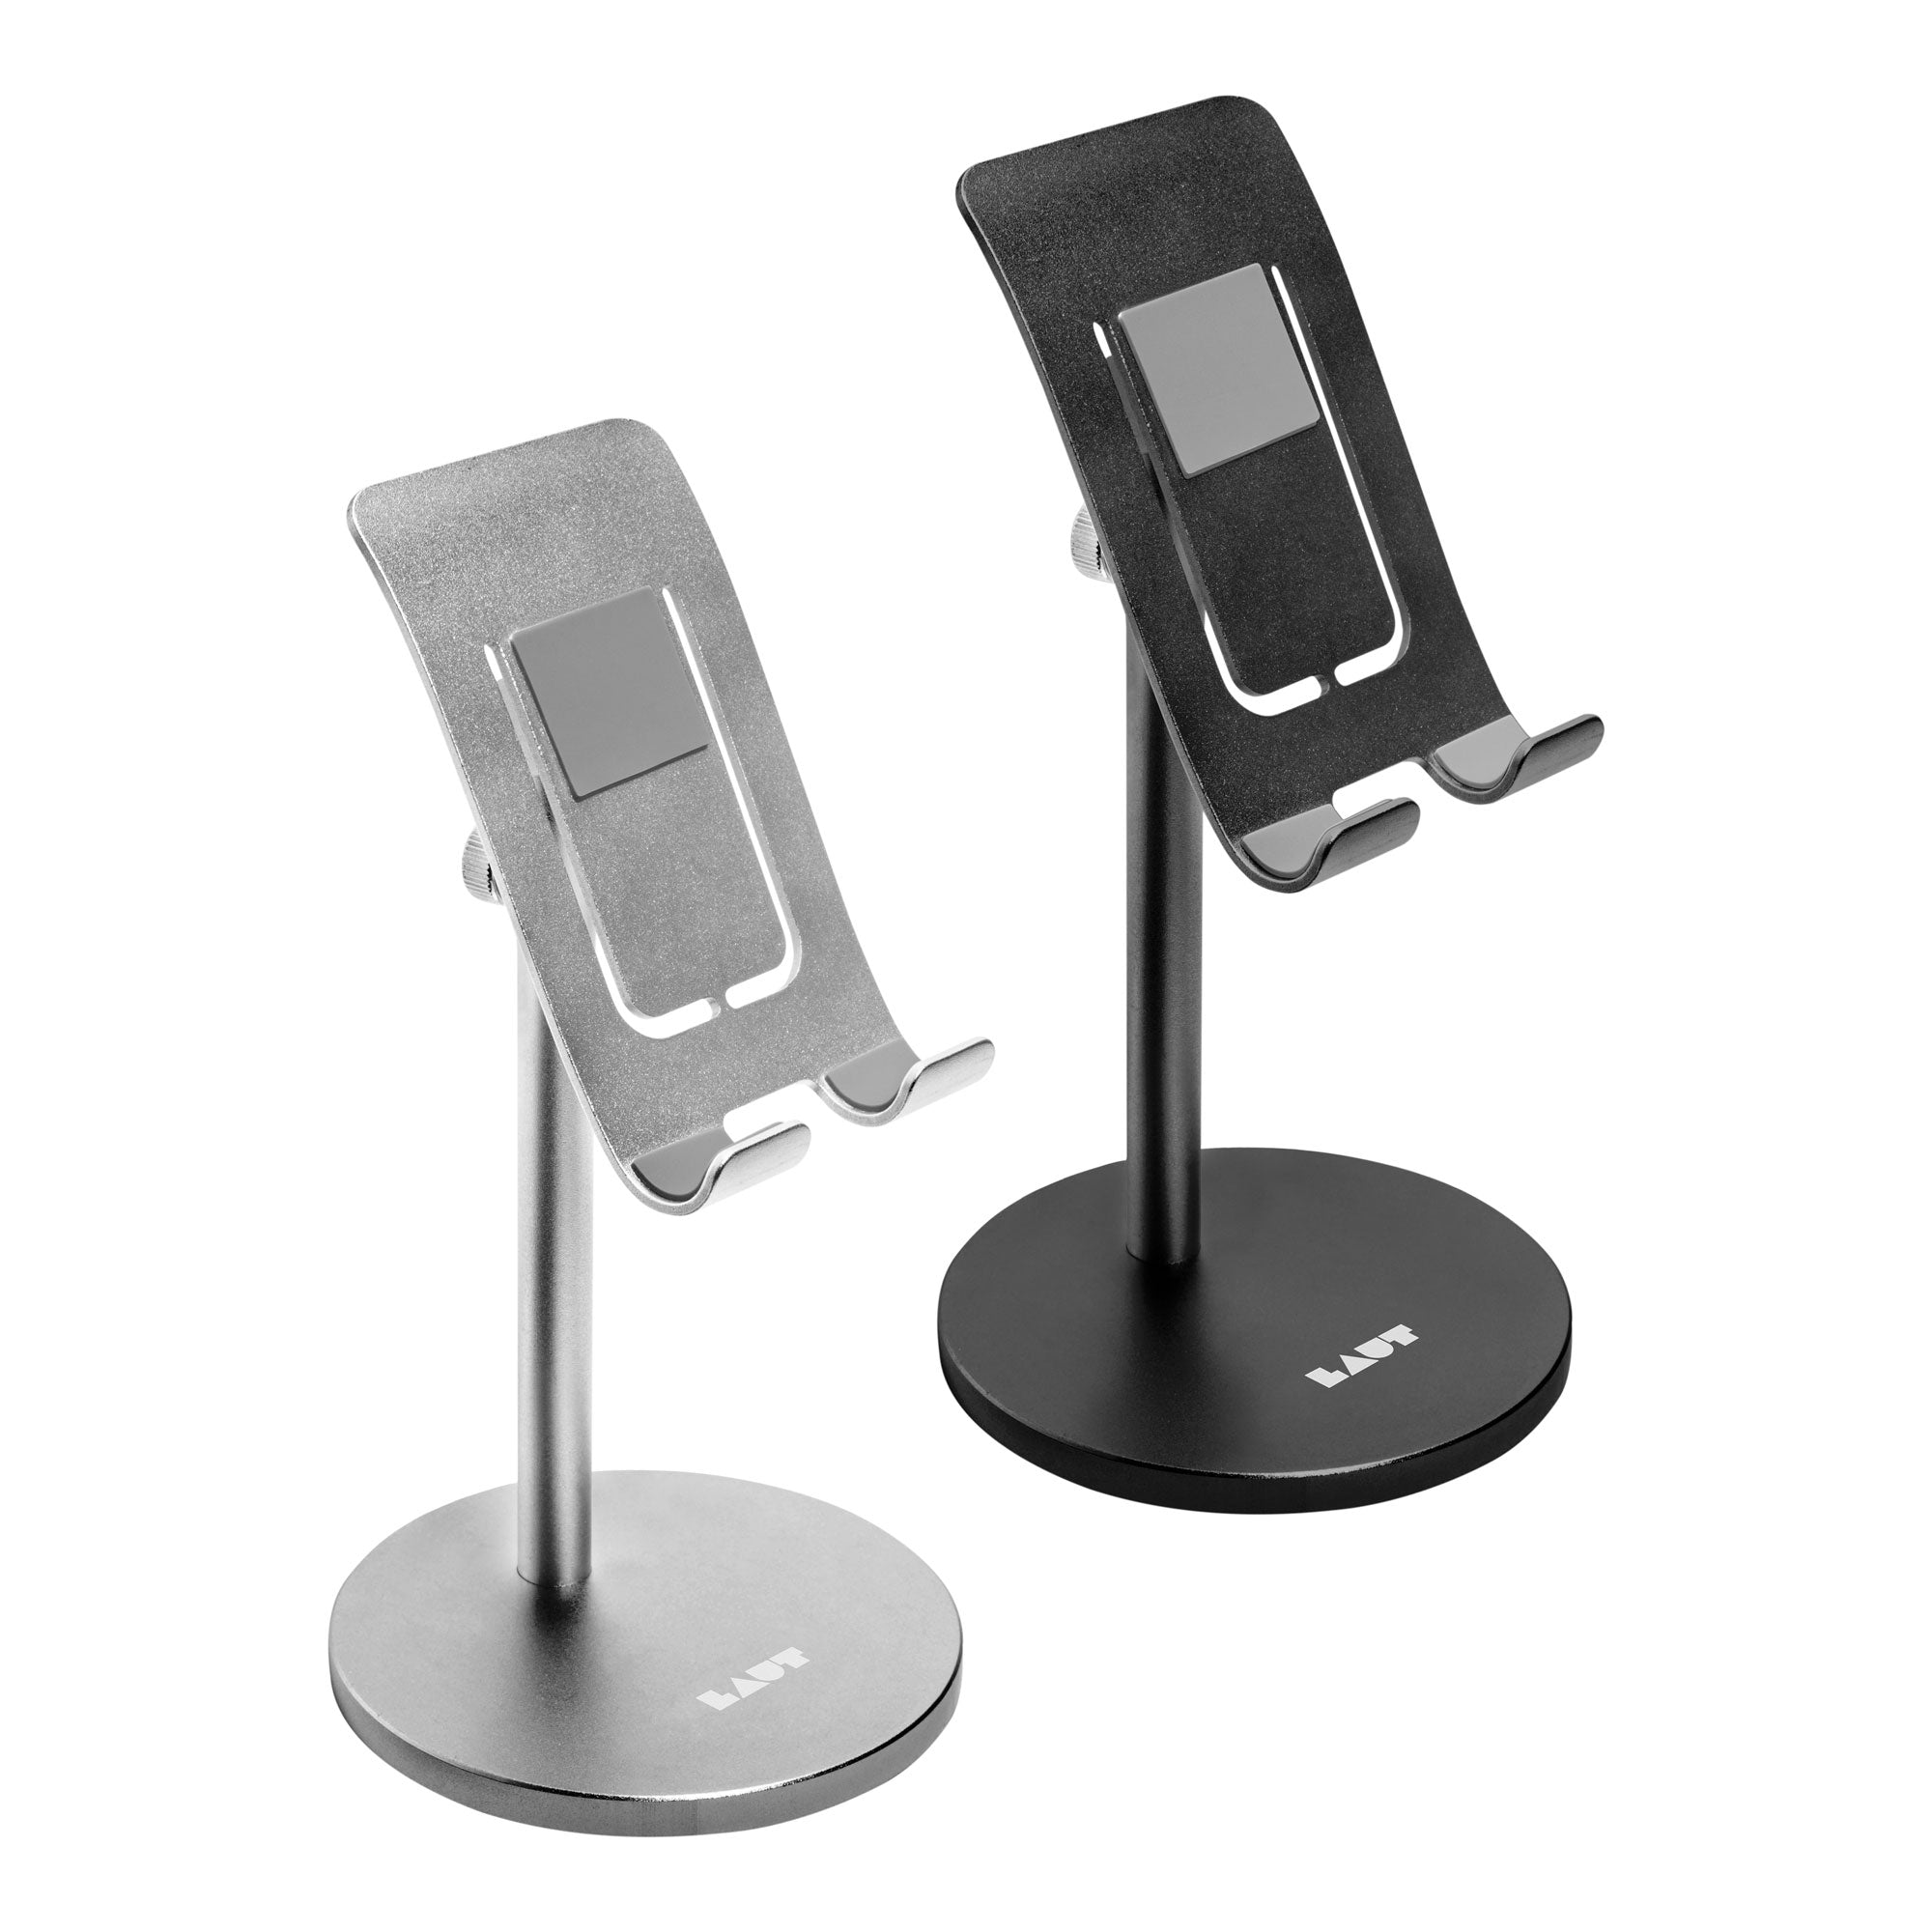 FREE STAND - Versatile Phone Stand